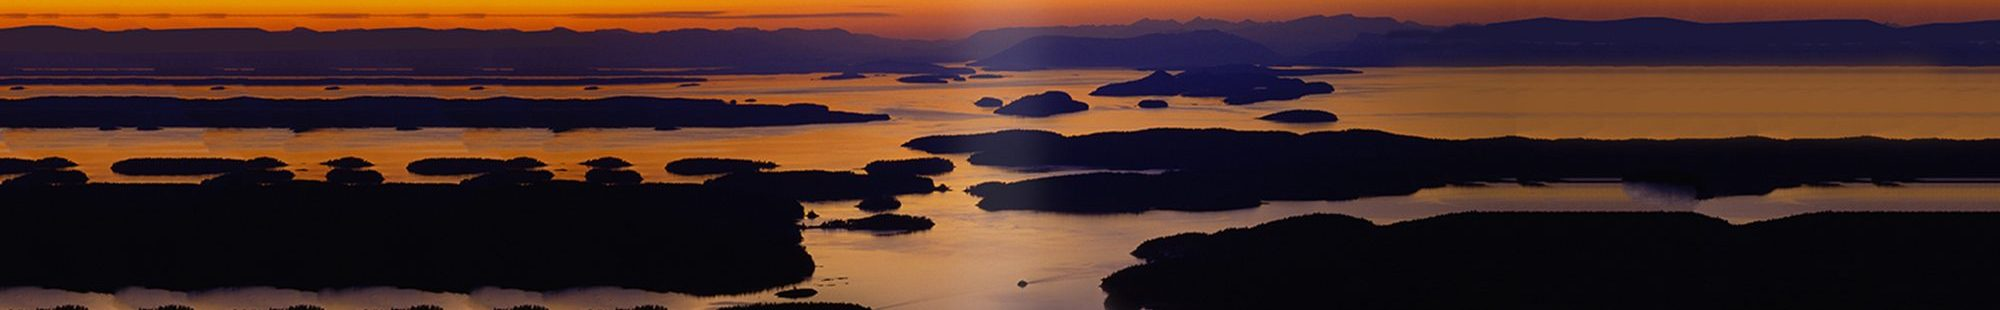 San Juan County, Washington, USA --- San Juan Islands at Twilight --- Image by © Bill Ross/CORBIS